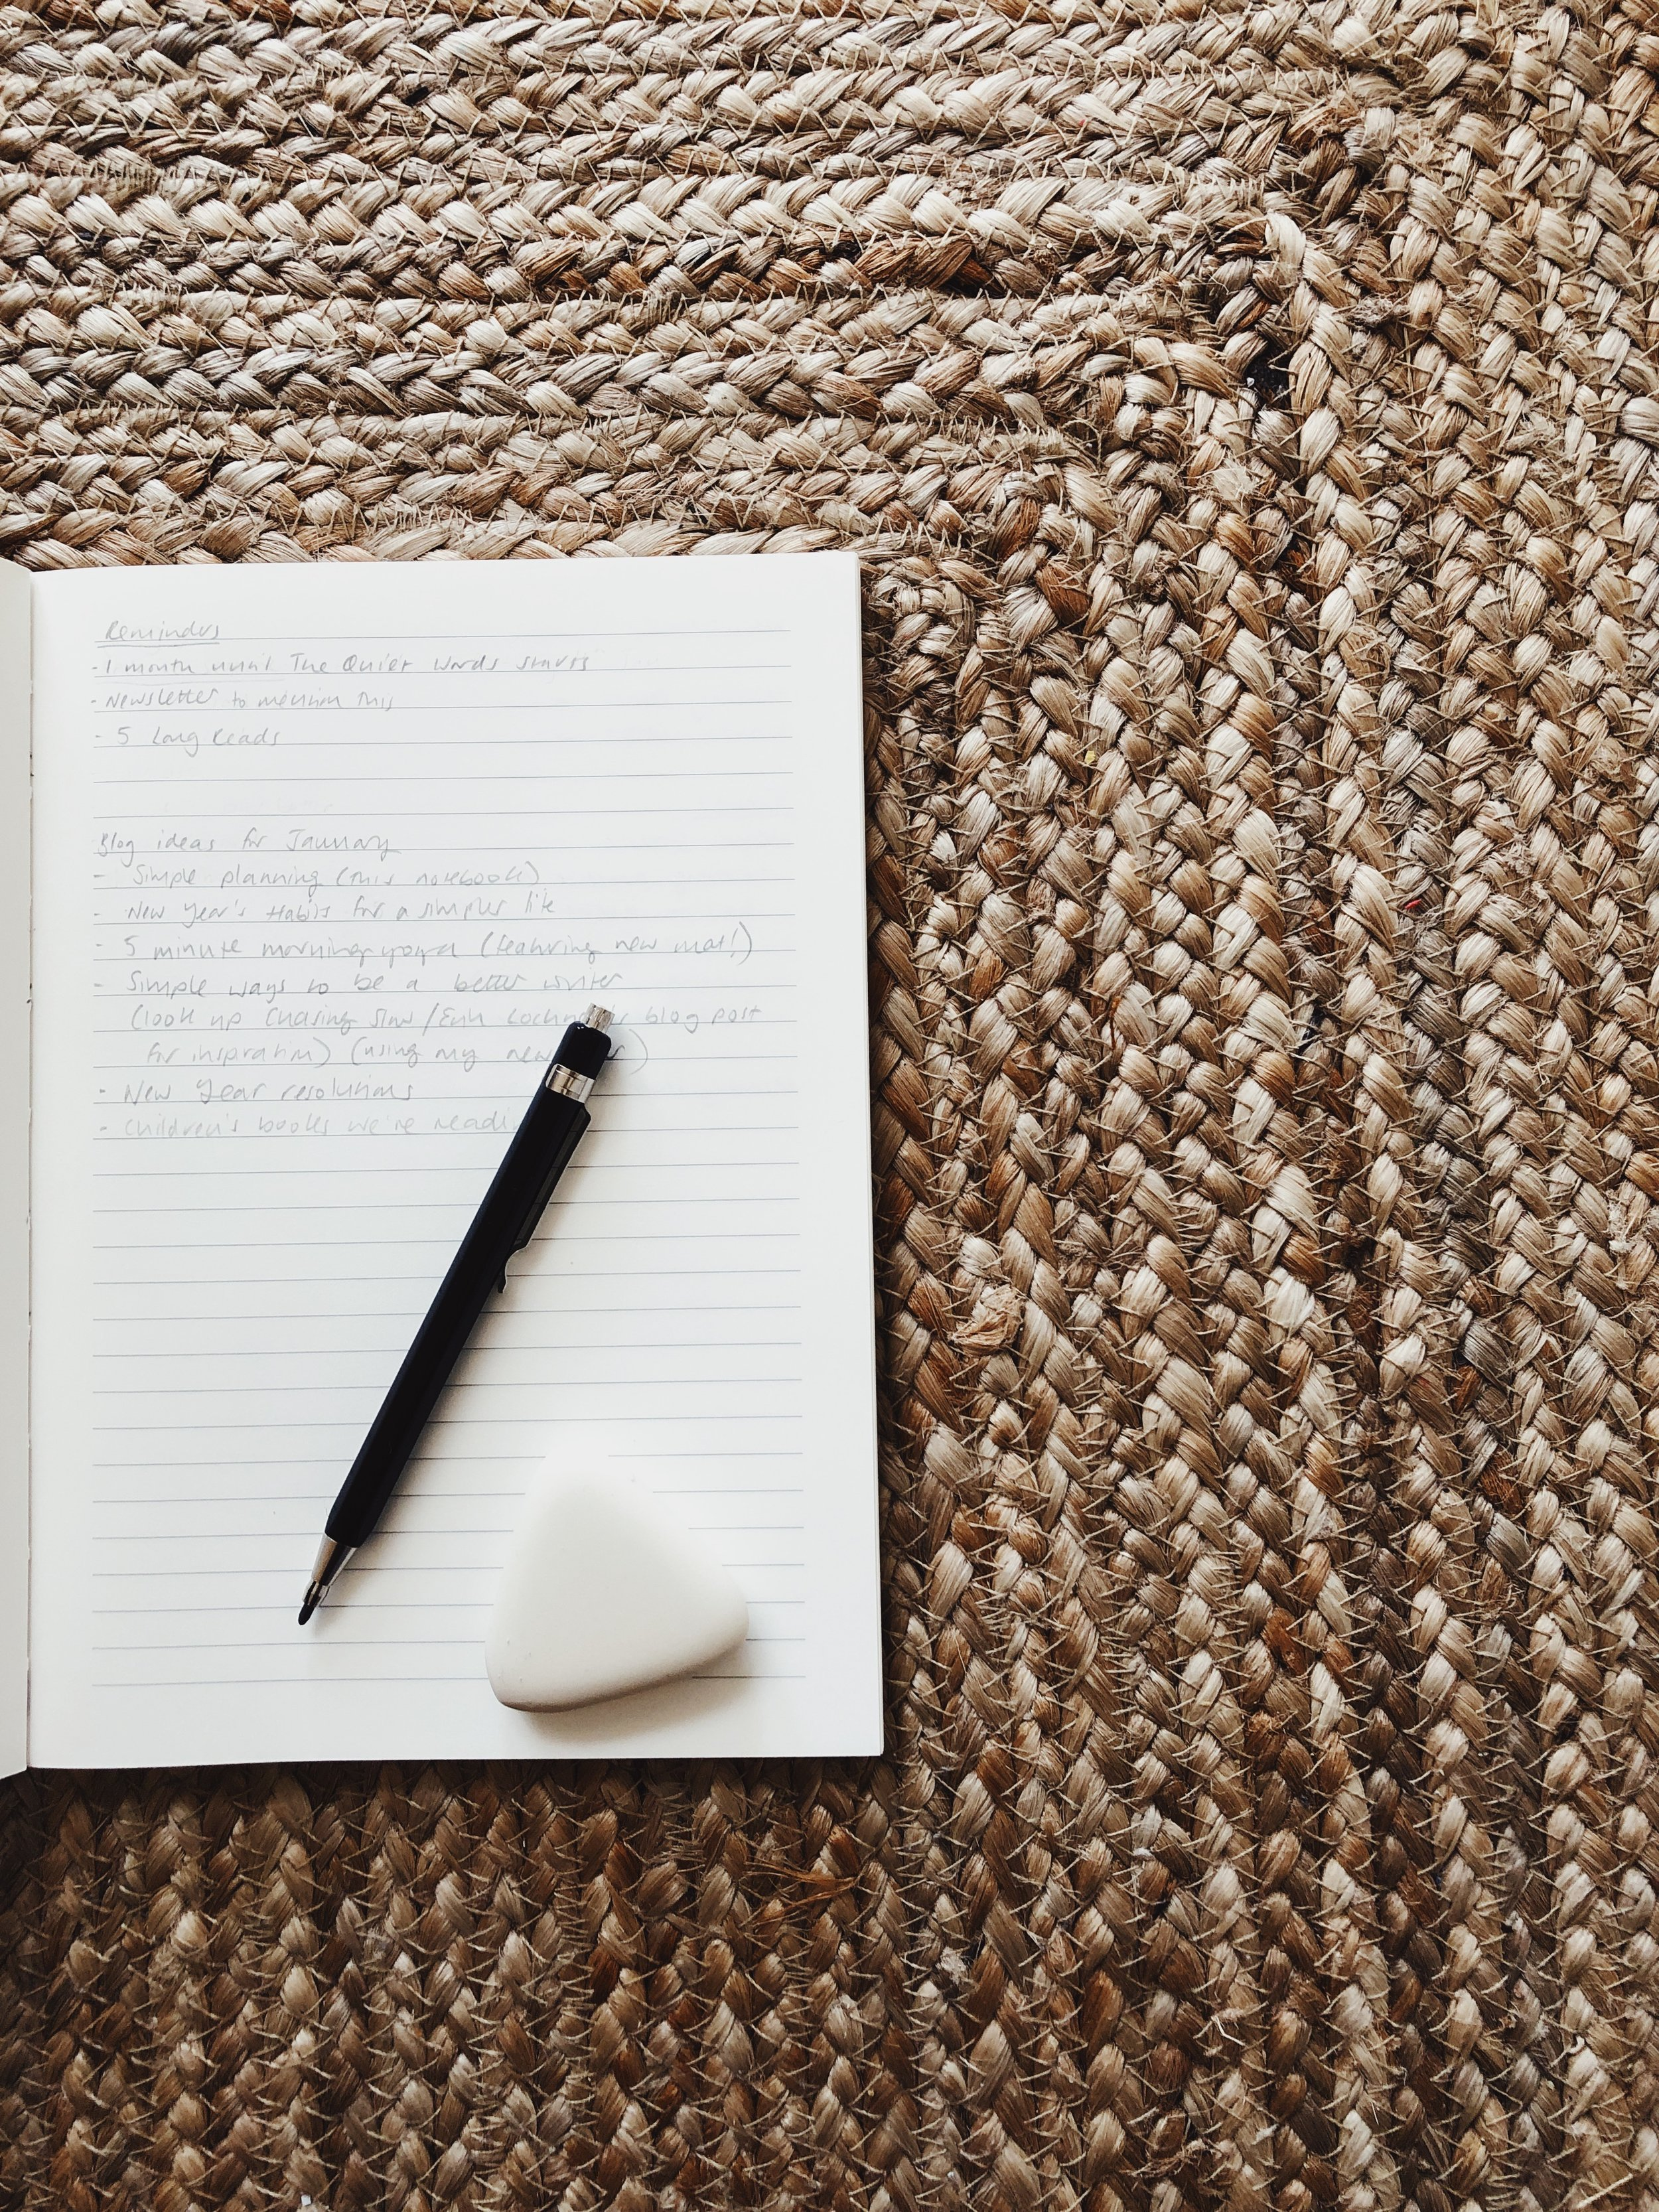 How to be a better writer - simple writing tips and ways to improve your writing or start writing. Read more on my blog, Our Story Time, www.ourstorytime.co.uk - how to be a writer tips, posts, articles